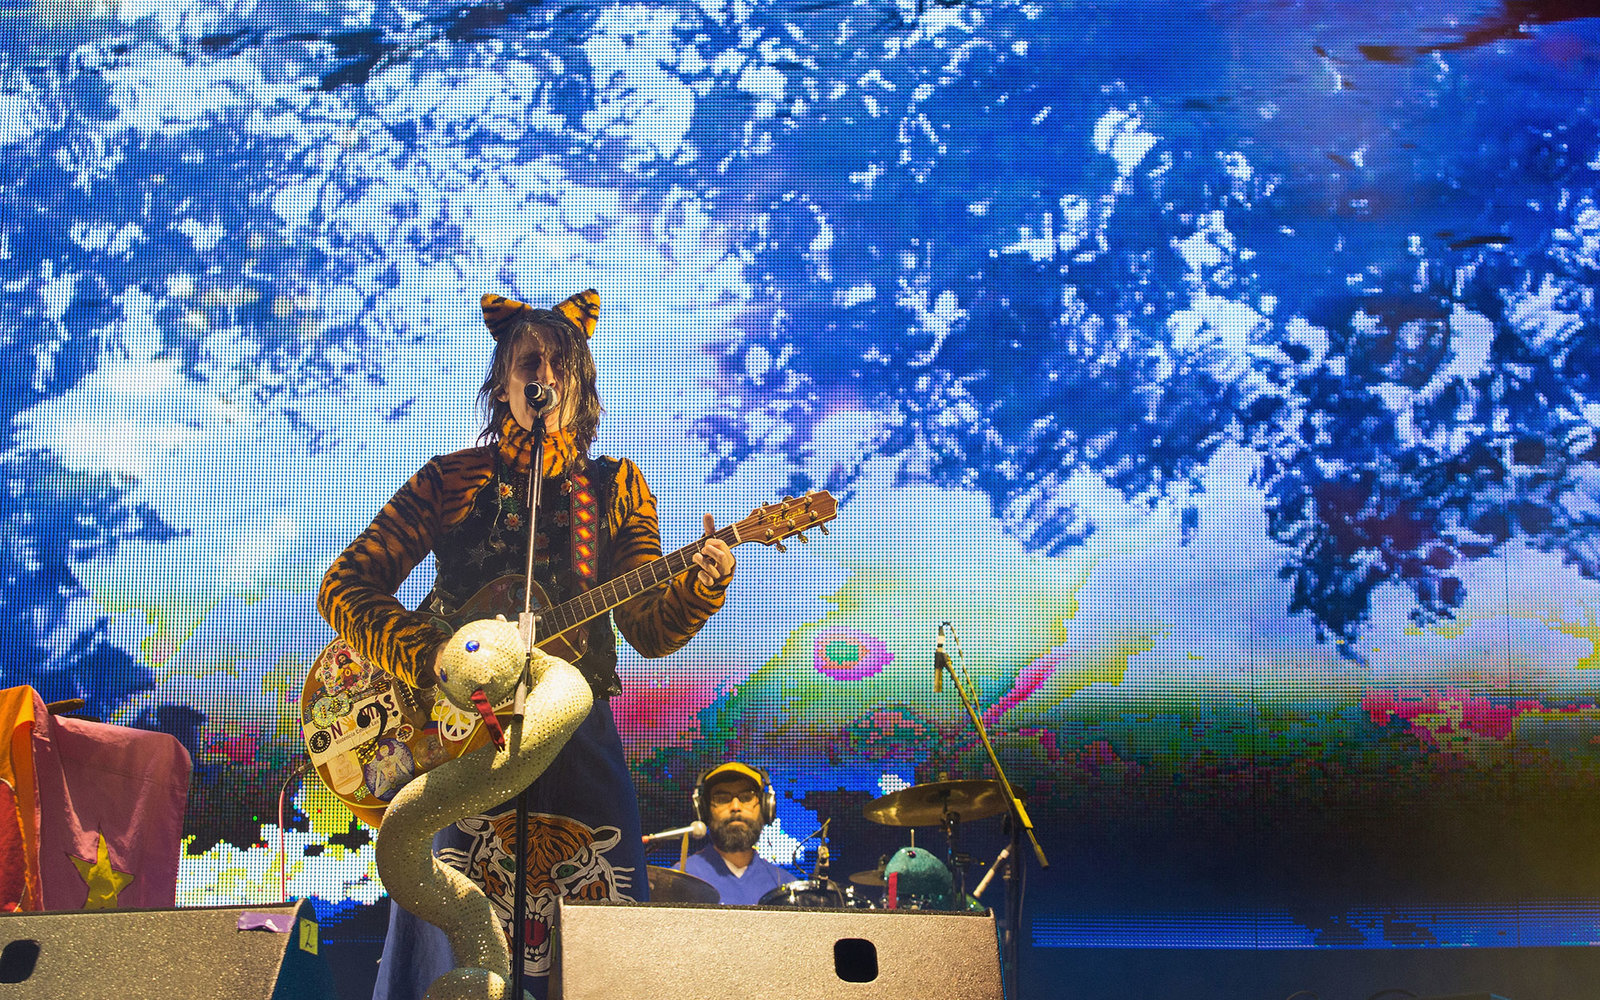 MEXICO CITY, MEXICO - MARCH 15:  Andrea Echeverri of Aterciopelados performs on stage during the third day of the Festival Vive Latino 2015 at Foro Sol on March 15, 2015 in Mexico City, Mexico.  (Photo by Victor Chavez/WireImage)